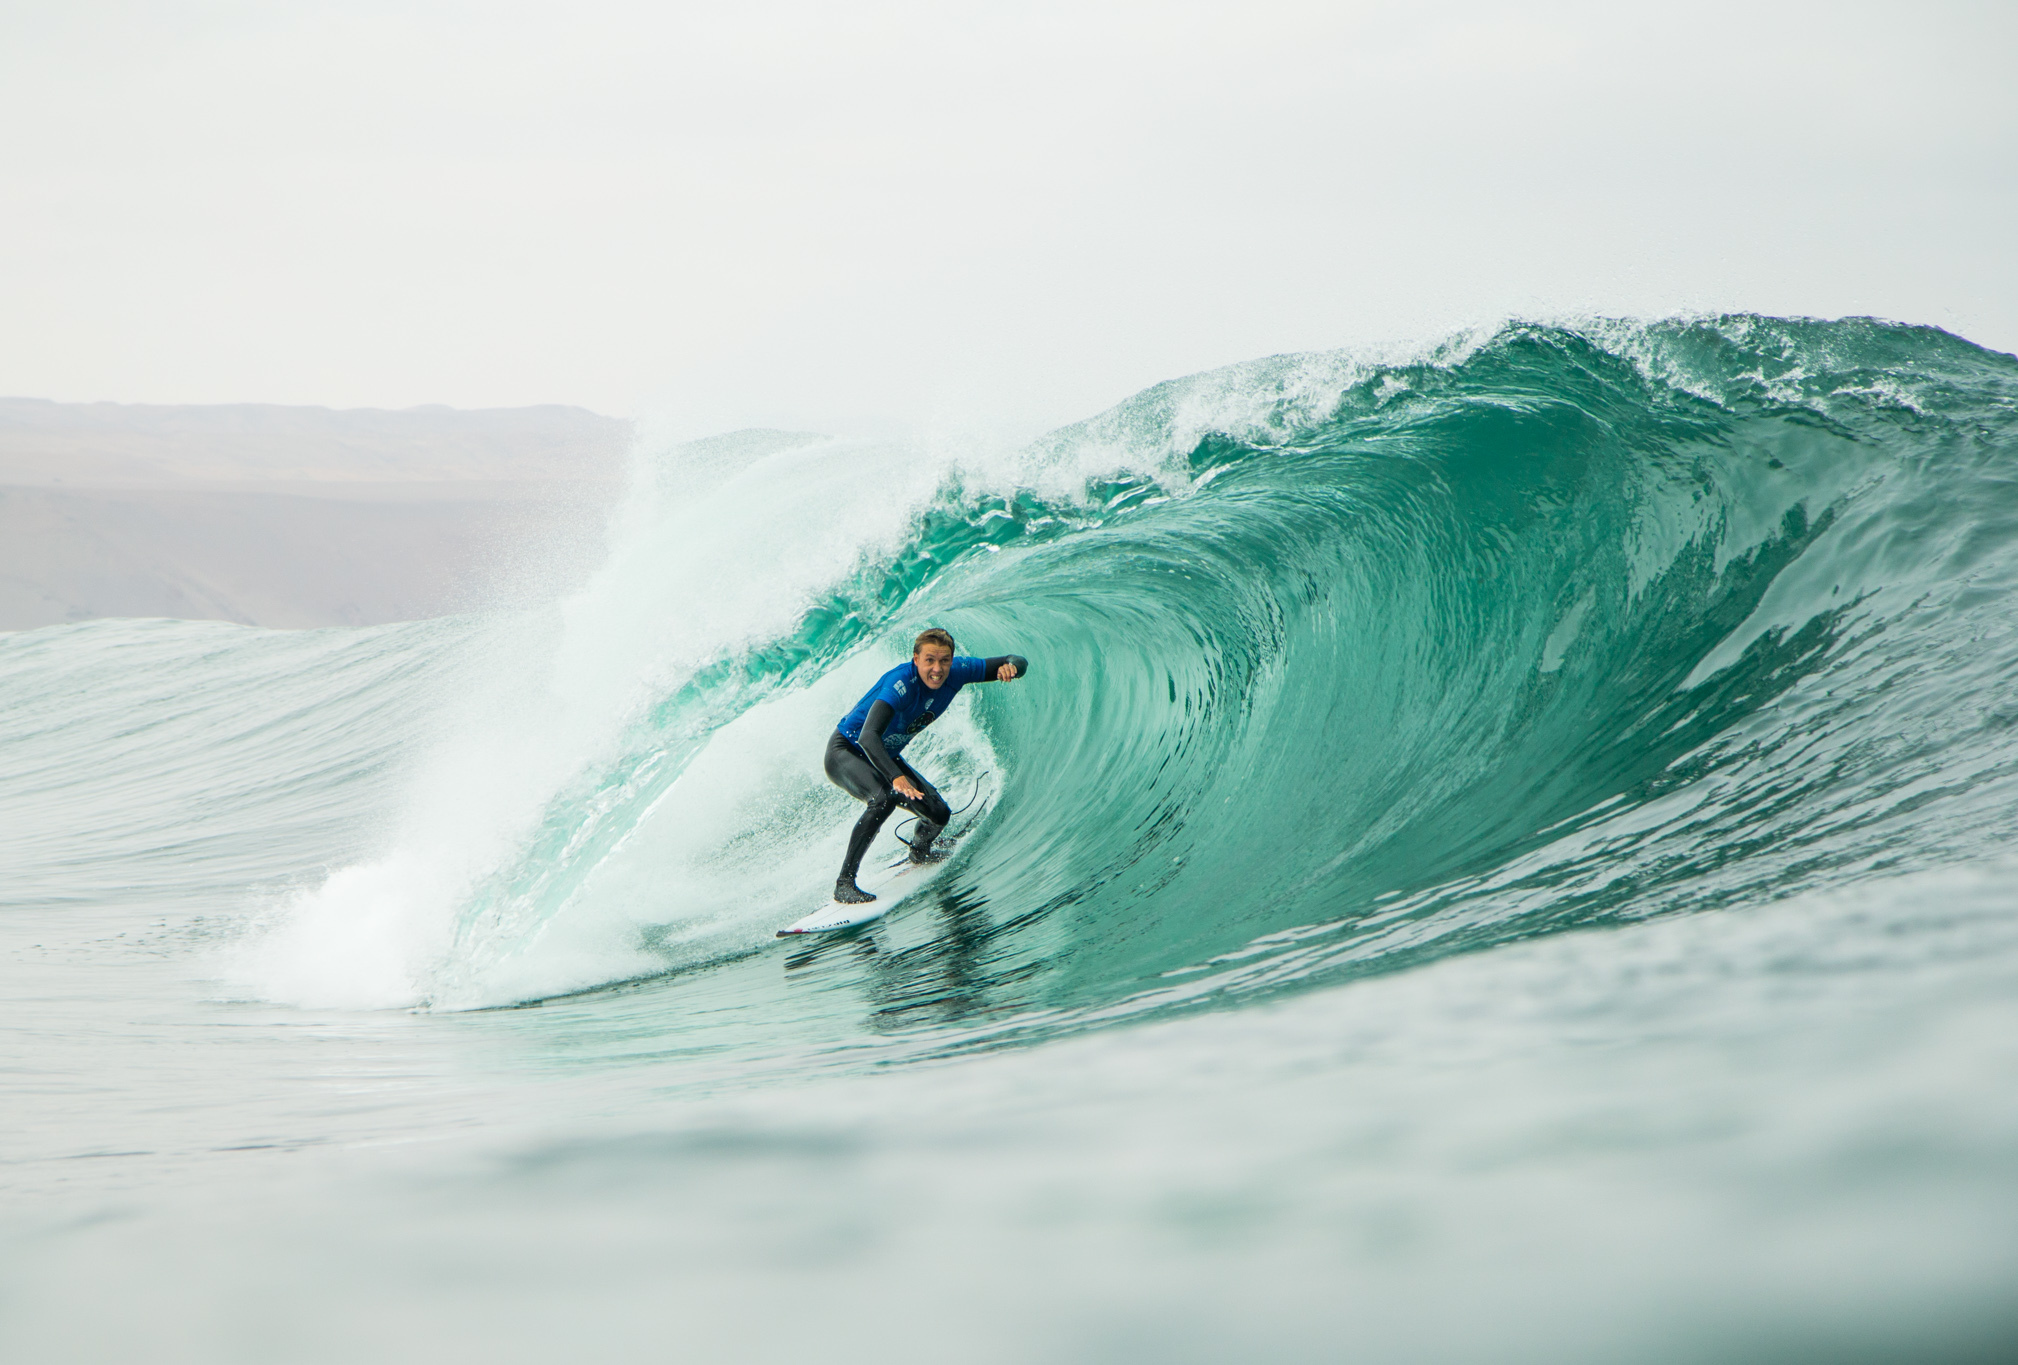 Jacob Willcox - Maui and Sons Arica Pro Tour